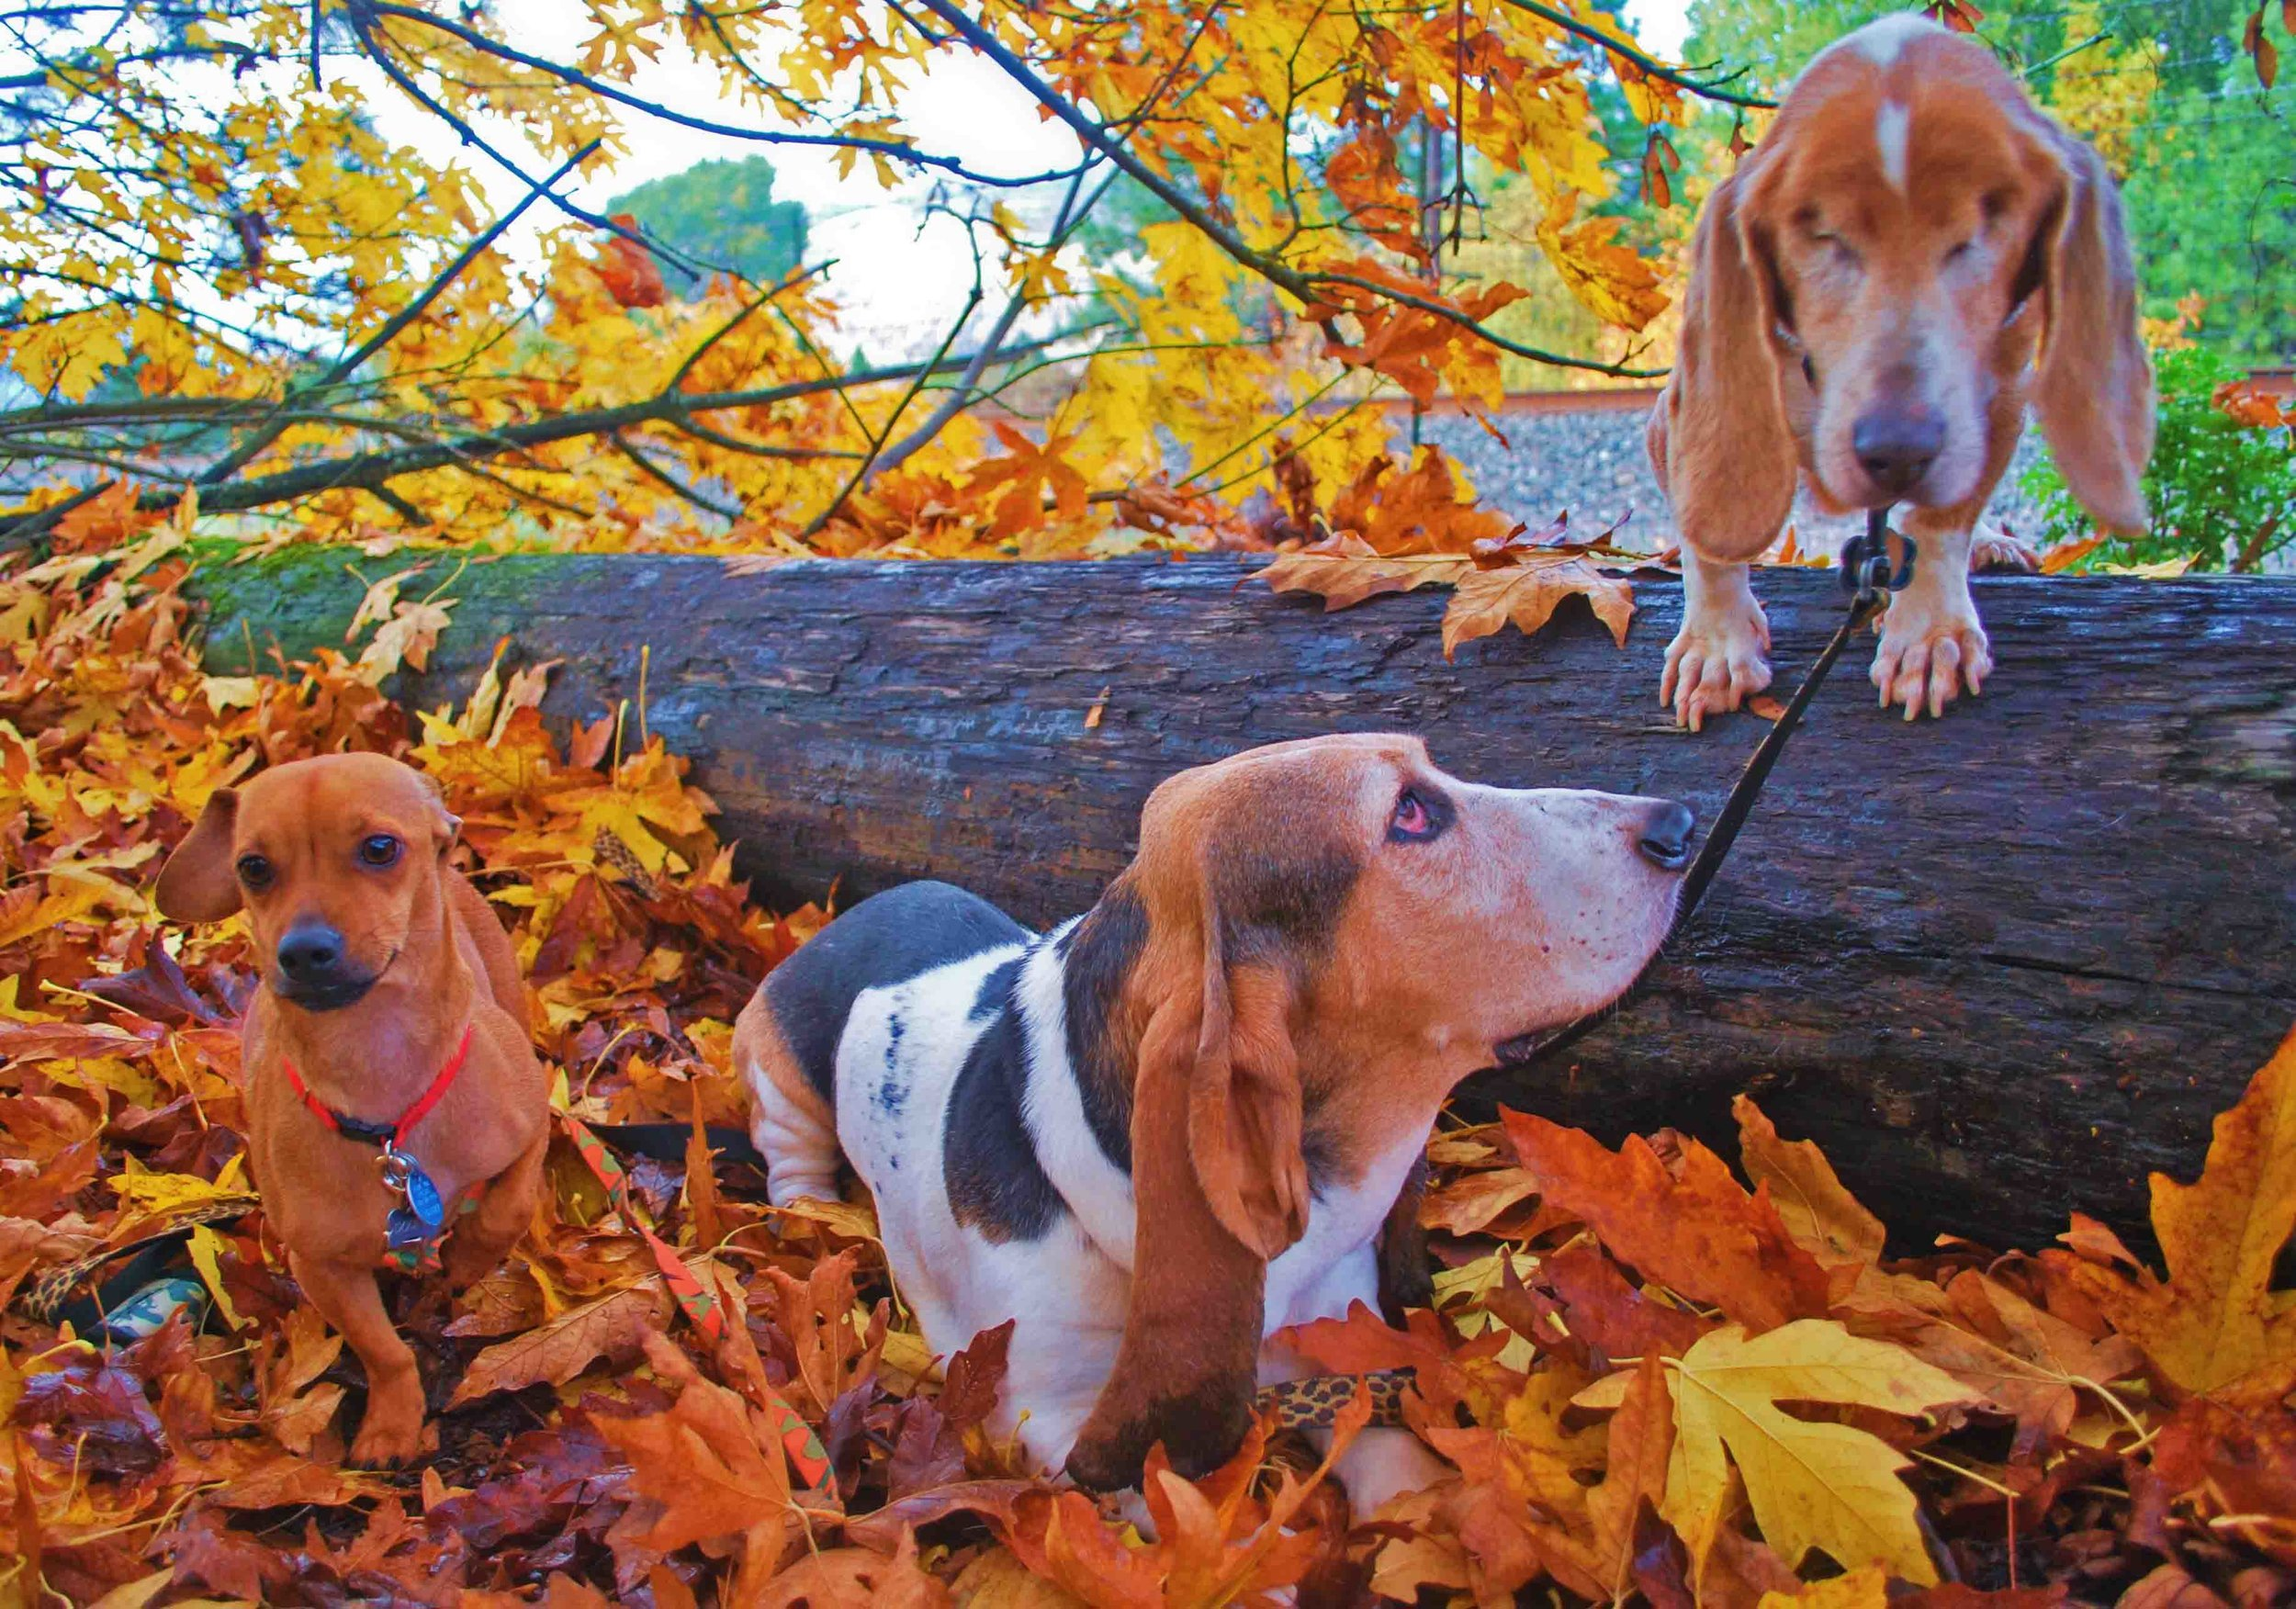 Our surf dog family last fall - before we lost my basset brother Elvis in May. We miss him this leaf season. Don't take a moment of life for granted. Photo: (c) Barb Ayers, DogDiary.org